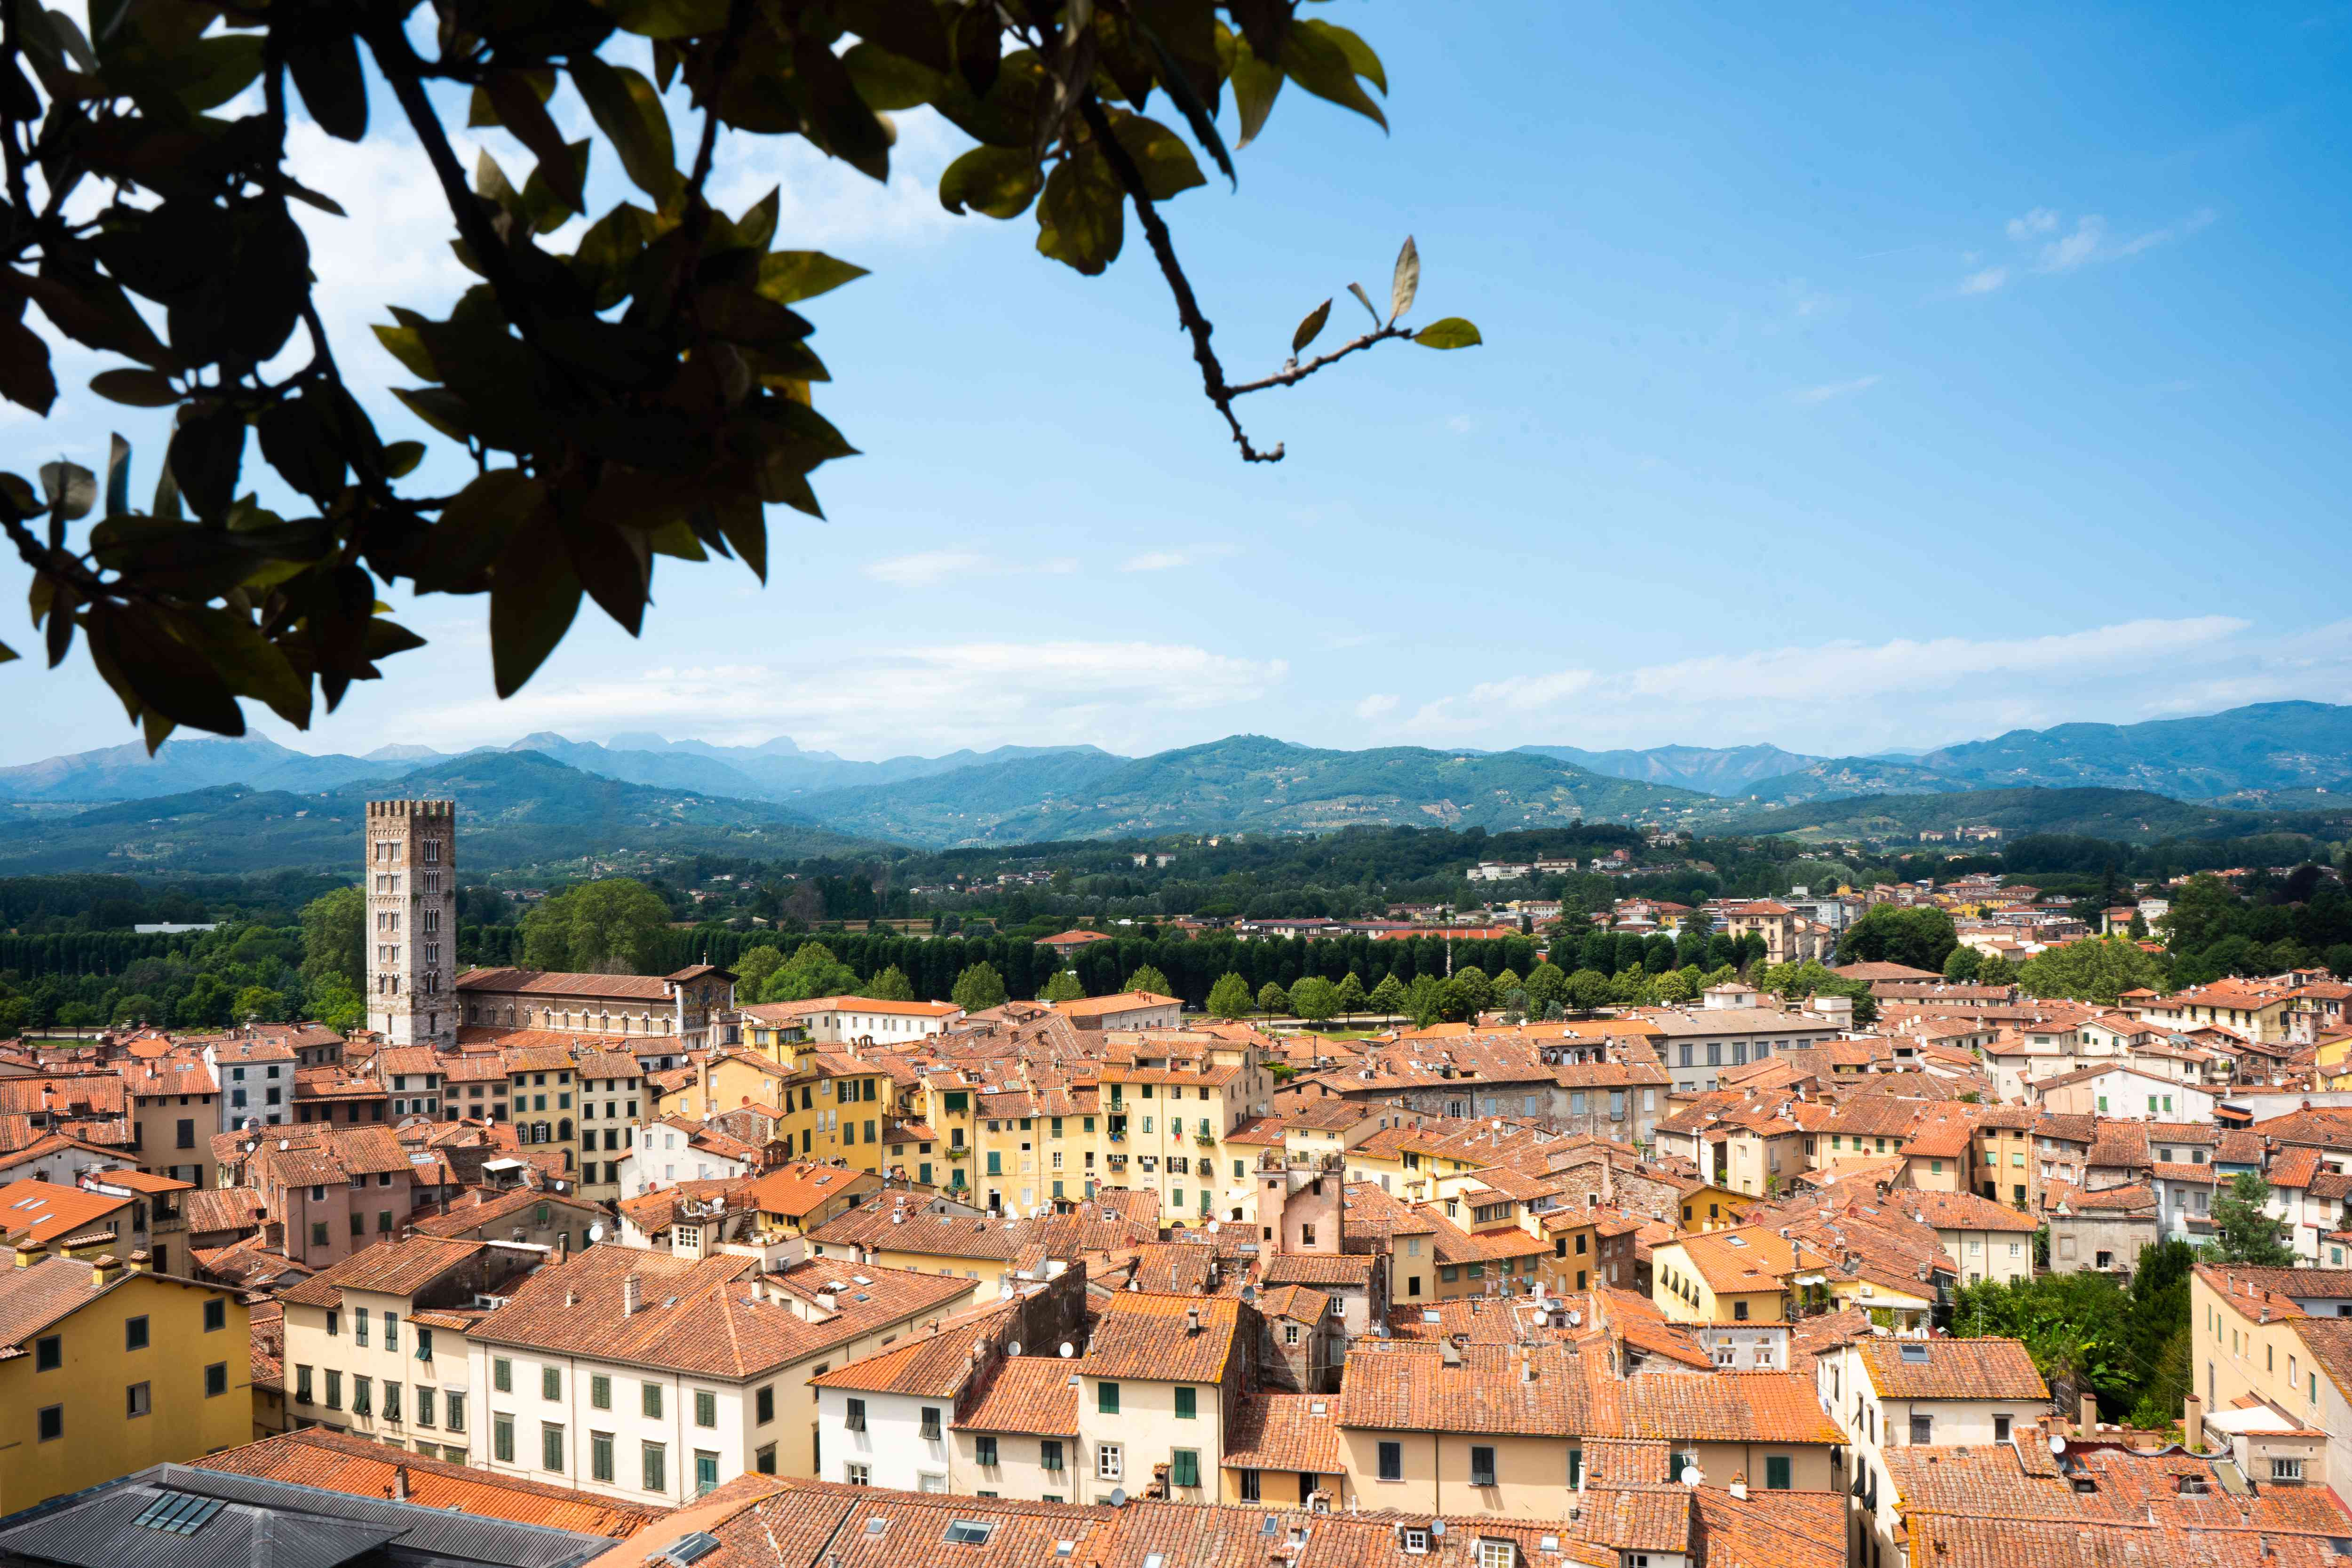 A view of the Lucca skyline from the Guinigi Tower